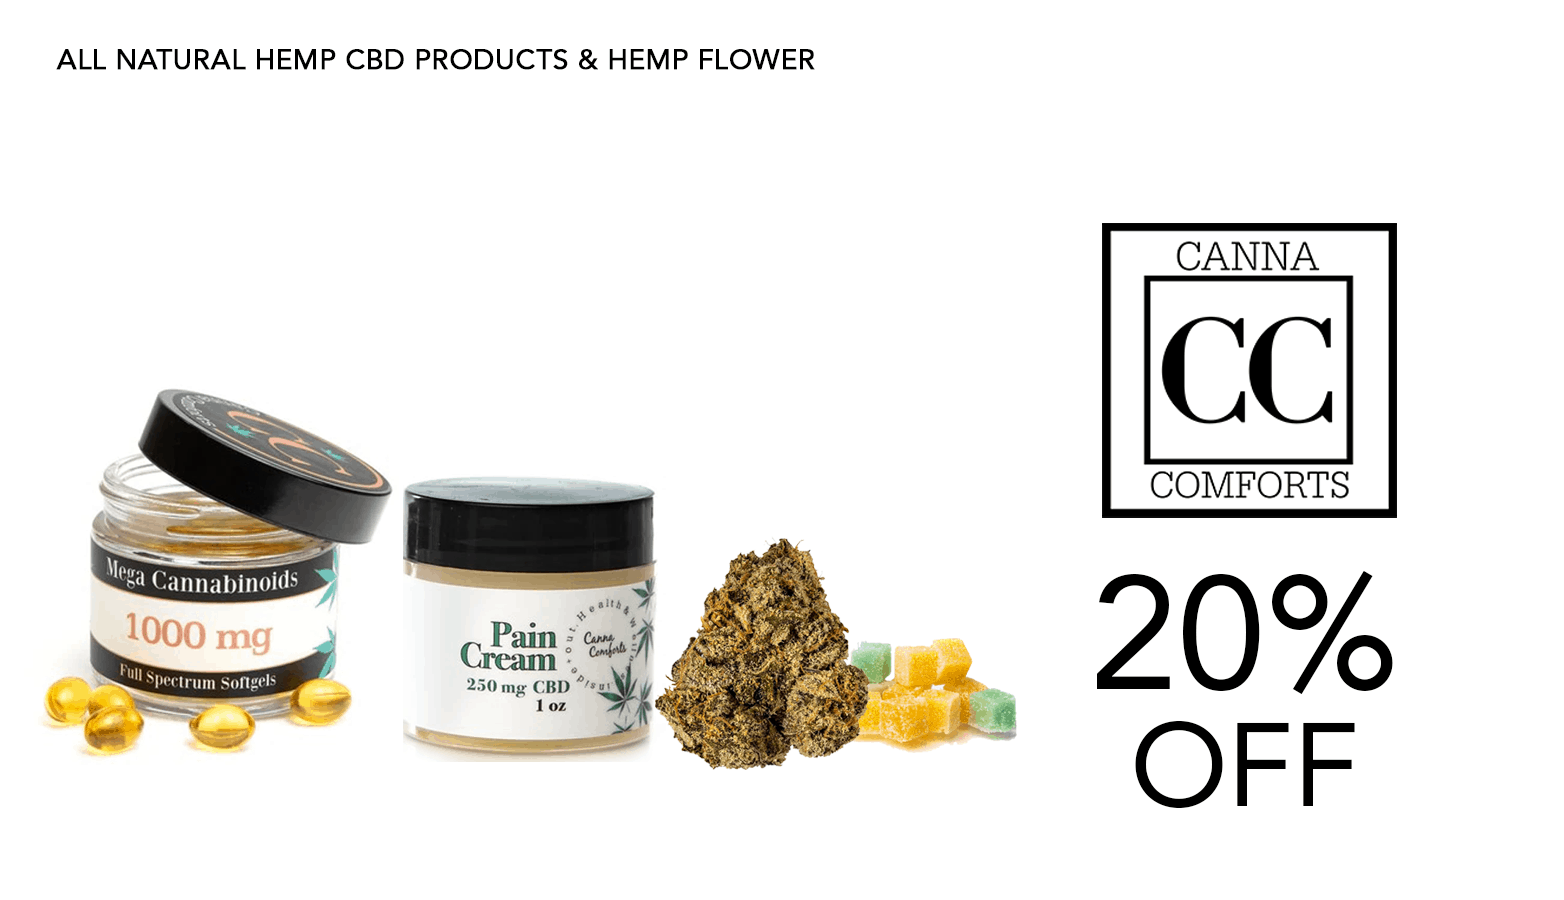 Canna Comforts CBD Coupon Code Offer Website